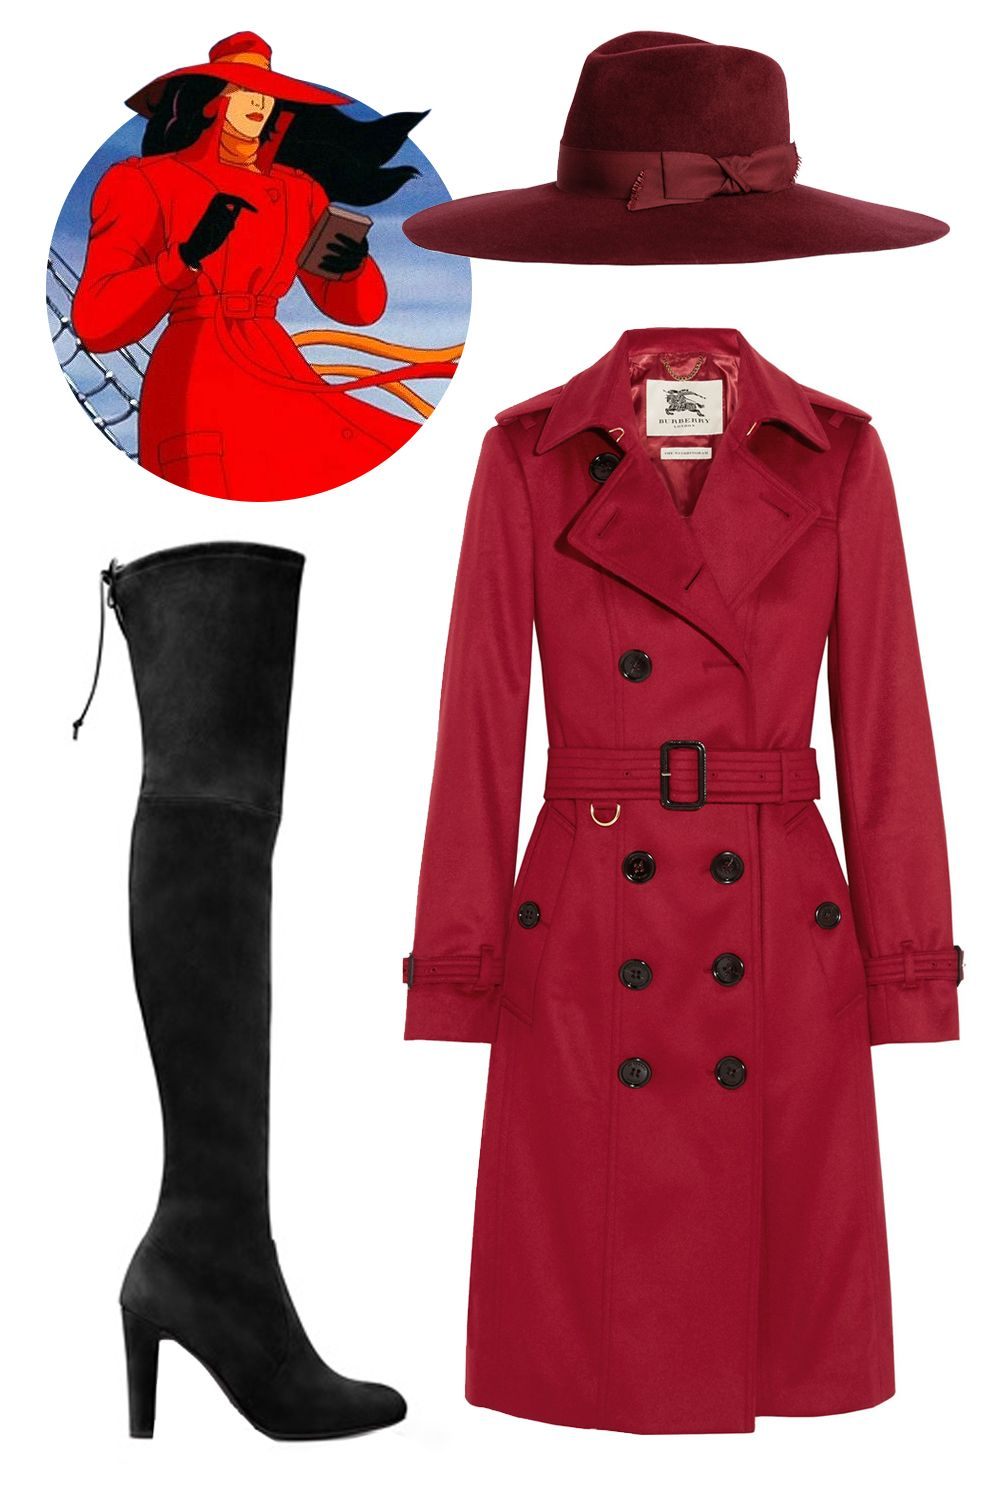 "<p>""I'd go for the international thieving villain, Carmen Sandiego: A red trench coat, matching fedora, and black boots.""</p><p>Burberry London Brushed Cashmere Trench Coat, $2,795; <a href=""http://www.net-a-porter.com/us/en/product/608442/Burberry_London/brushed-cashmere-trench-coat"">net-a-porter.com</a><br>Stuart Weitzman The Highland Boots, $798; <a href=""http://www.stuartweitzman.com/products/highland/?DepartmentId=759&DepartmentGroupId=1&ColMatID=16146"">stuartweitzman.com</a><br>Preston and Olivia Ashby Wide Brim Fedora, $210; <a href=""http://prestonandolivia.com/collections/women/products/ashby-15?variant=5280358211"">prestonandolivia.com</a></p>"